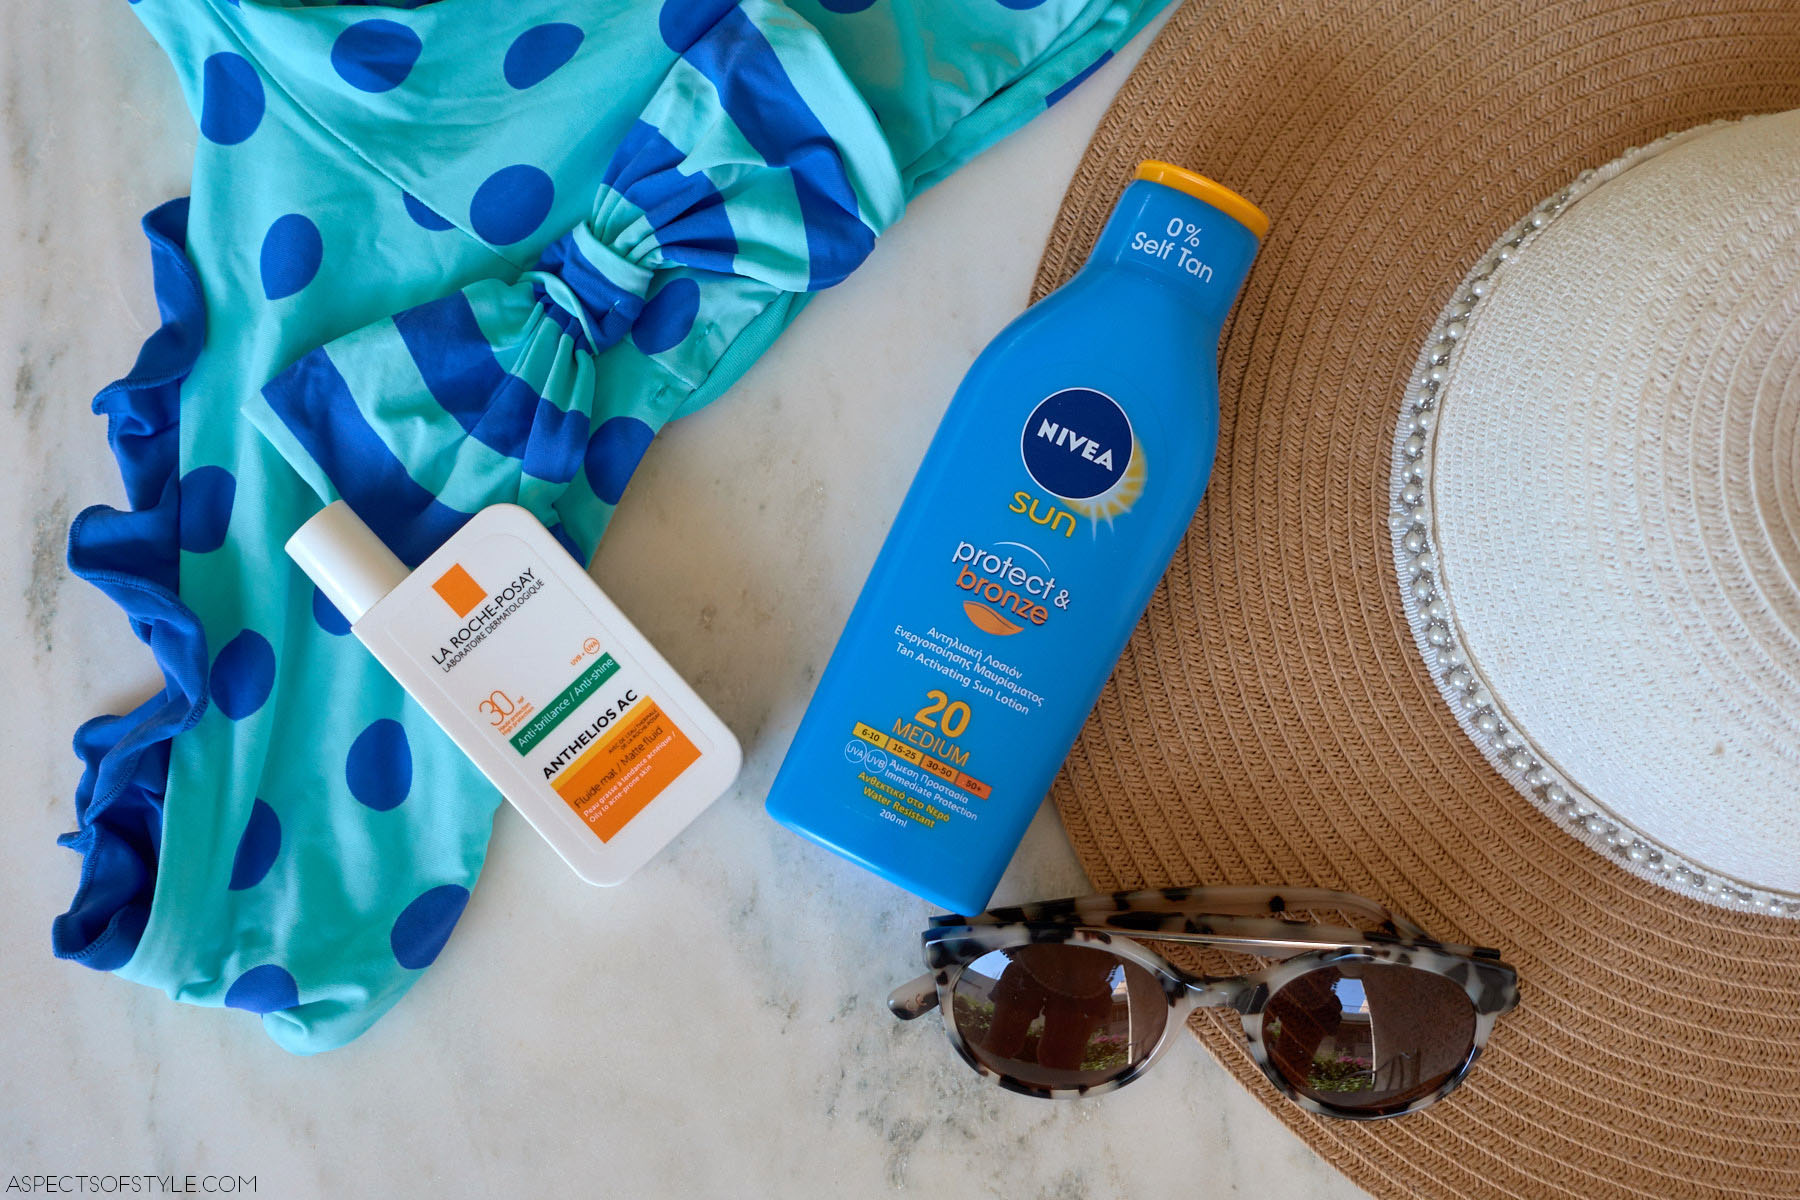 Greek Vacations summer beauty essentials - Aspects Of Style